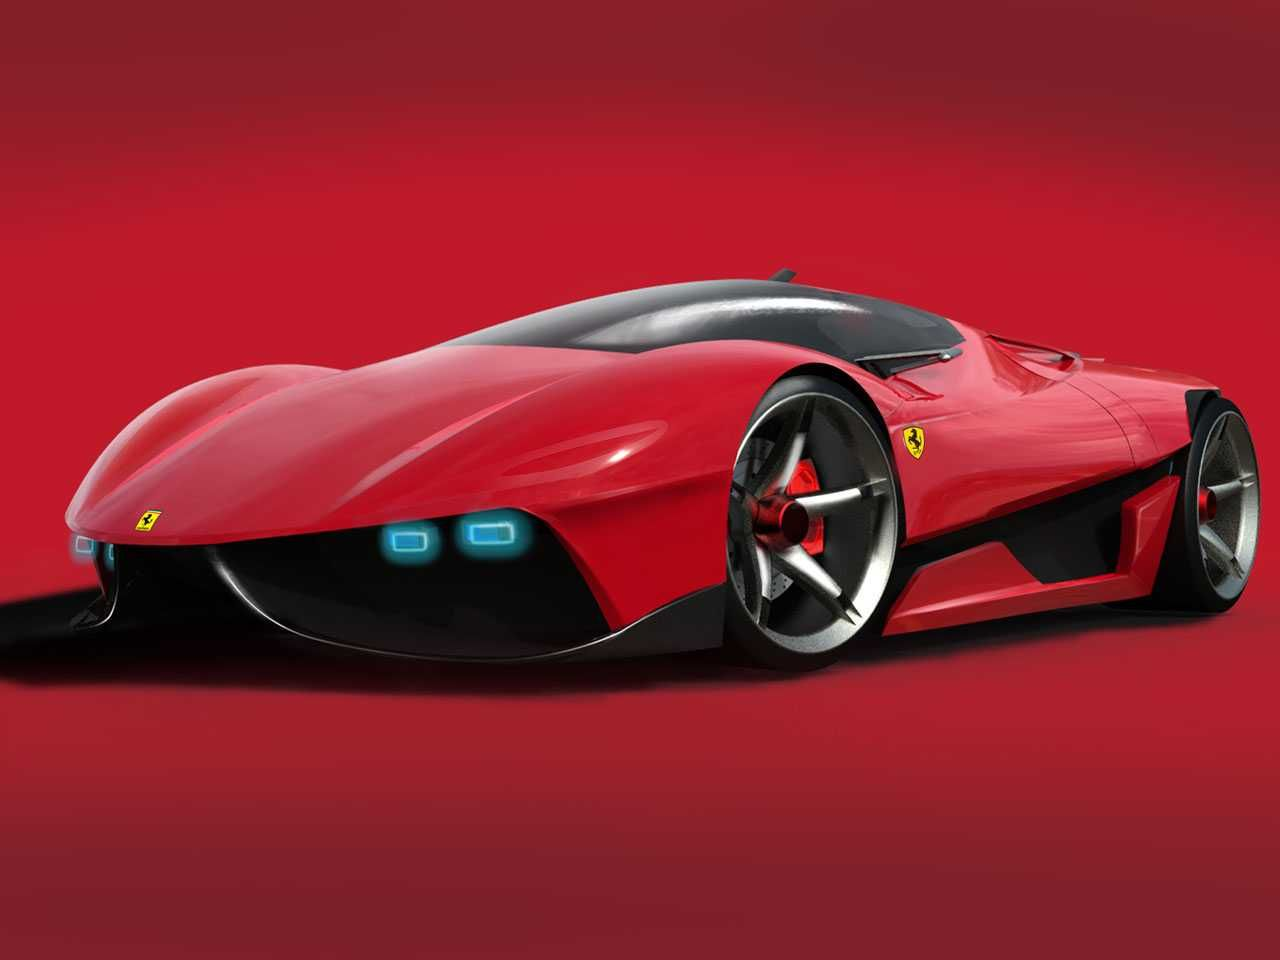 future automobiles car luxurious of new ferrari ego in red concept gradasishop future car